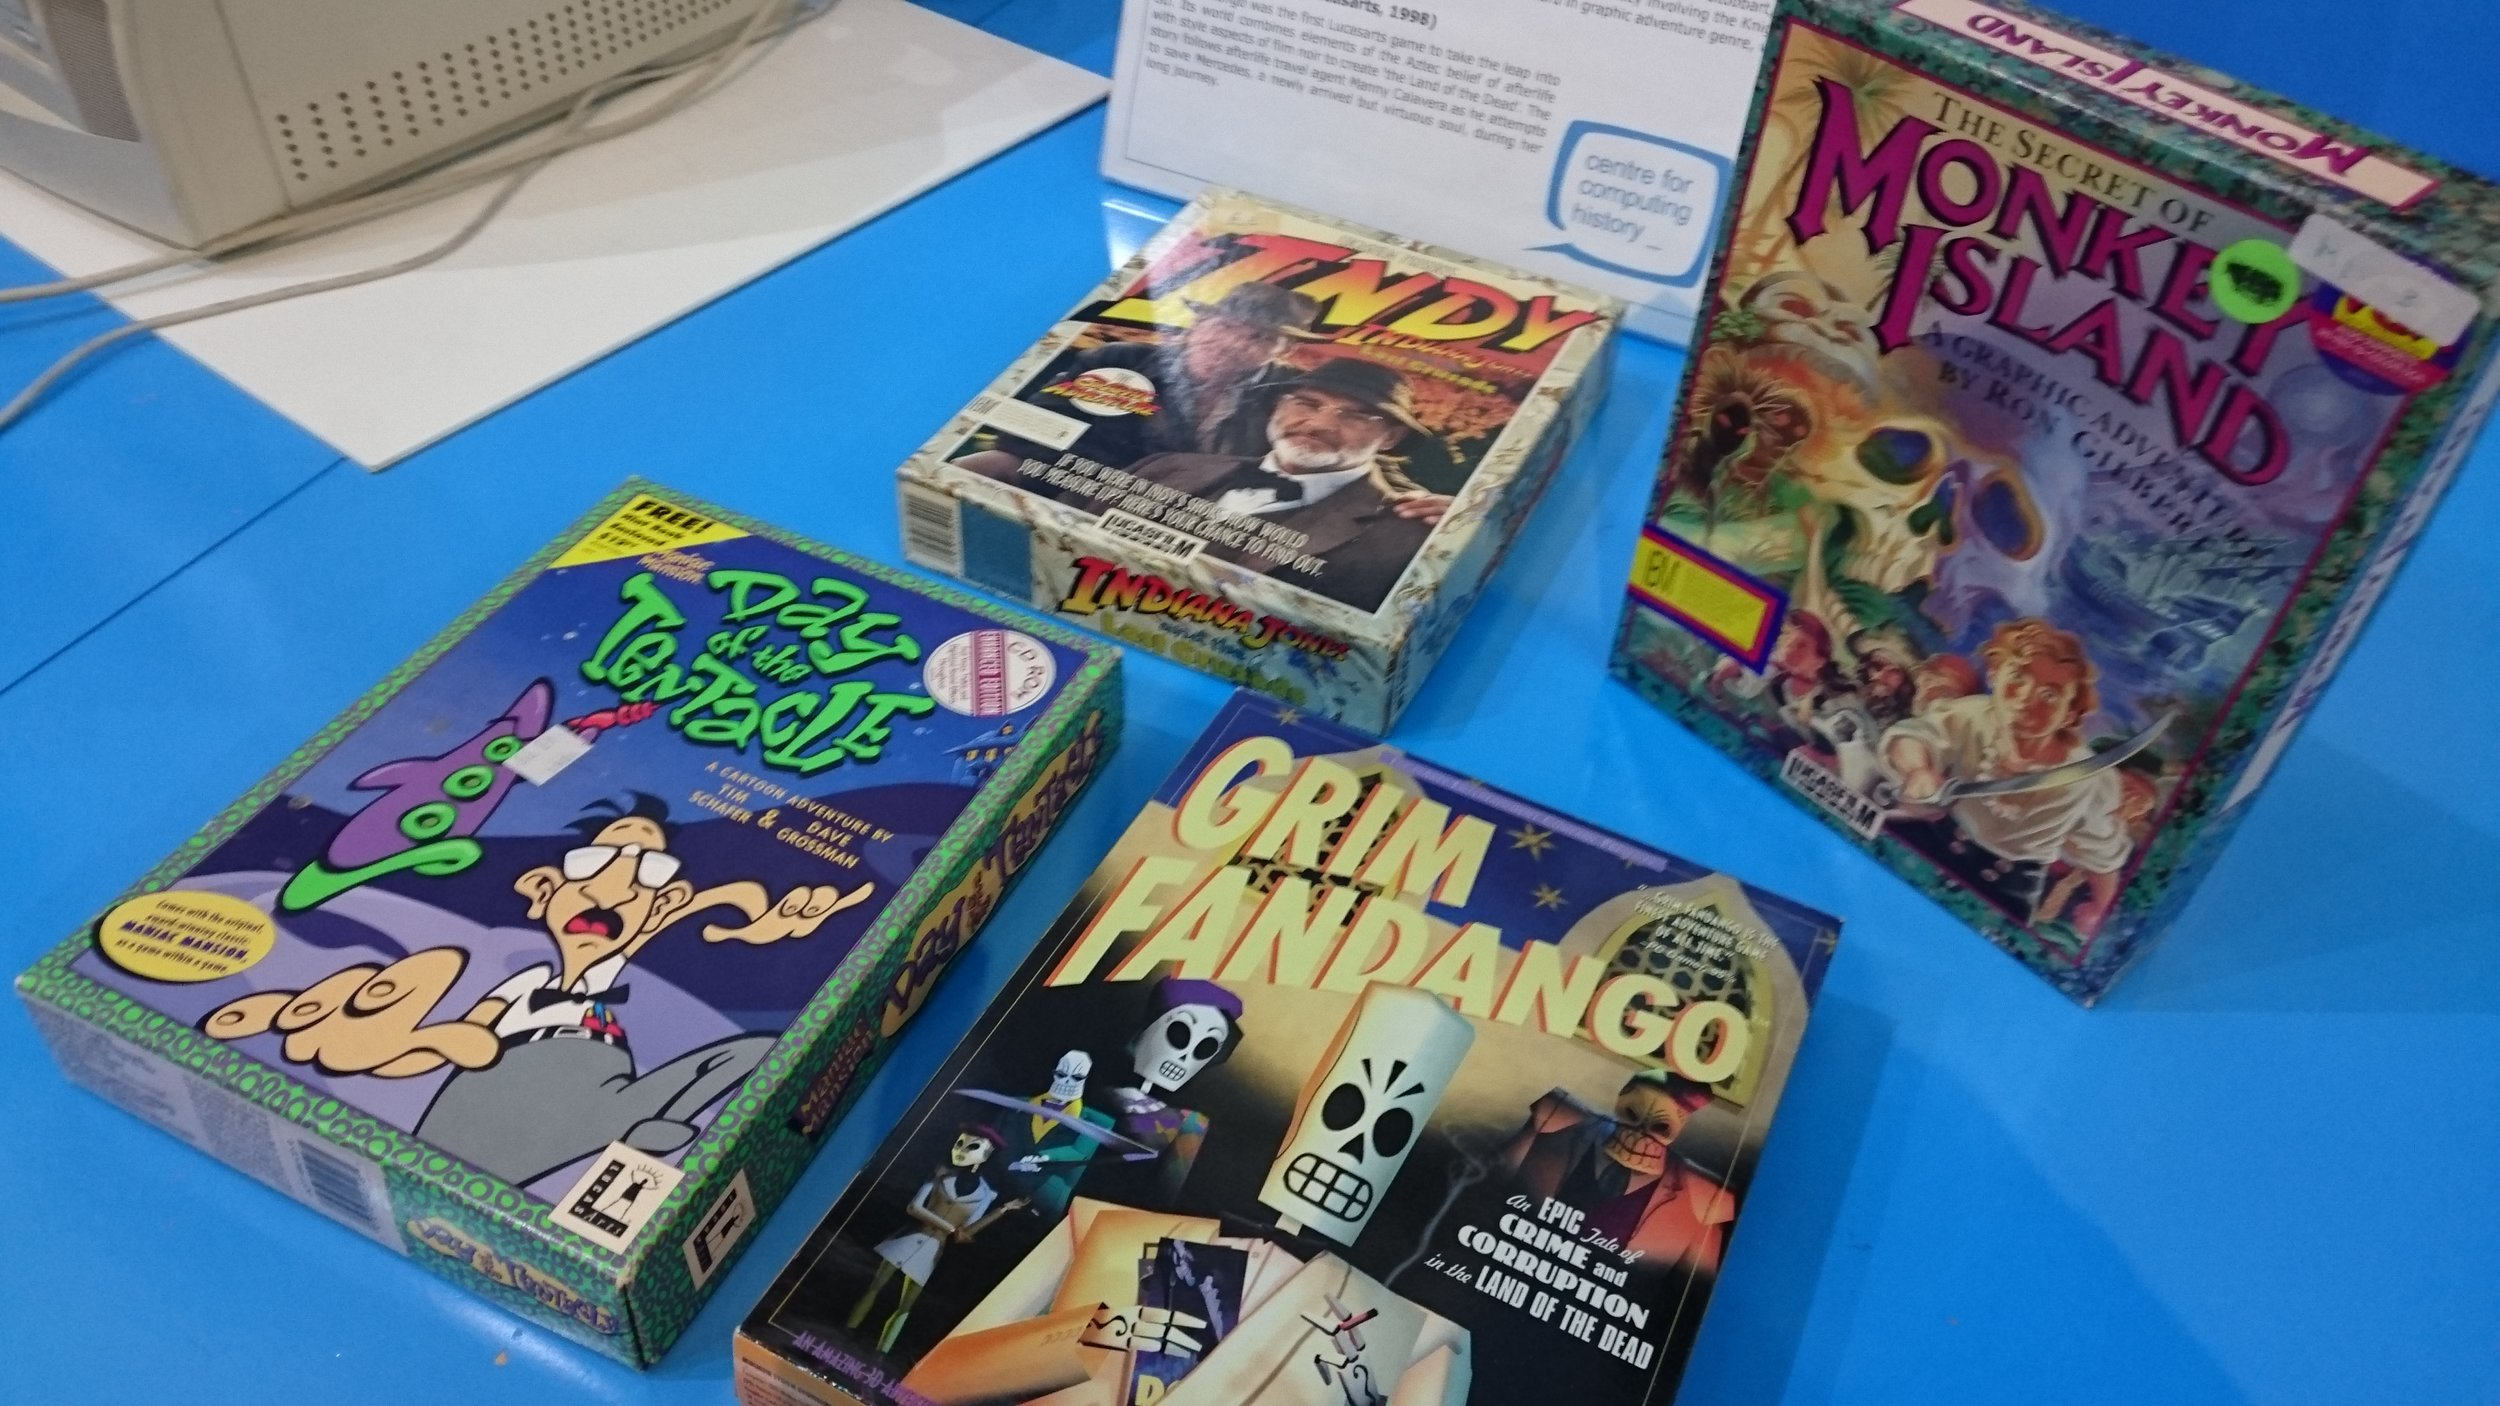 The lovely peeps got some classic adventure game out of storgage for us to sit alonside our stand